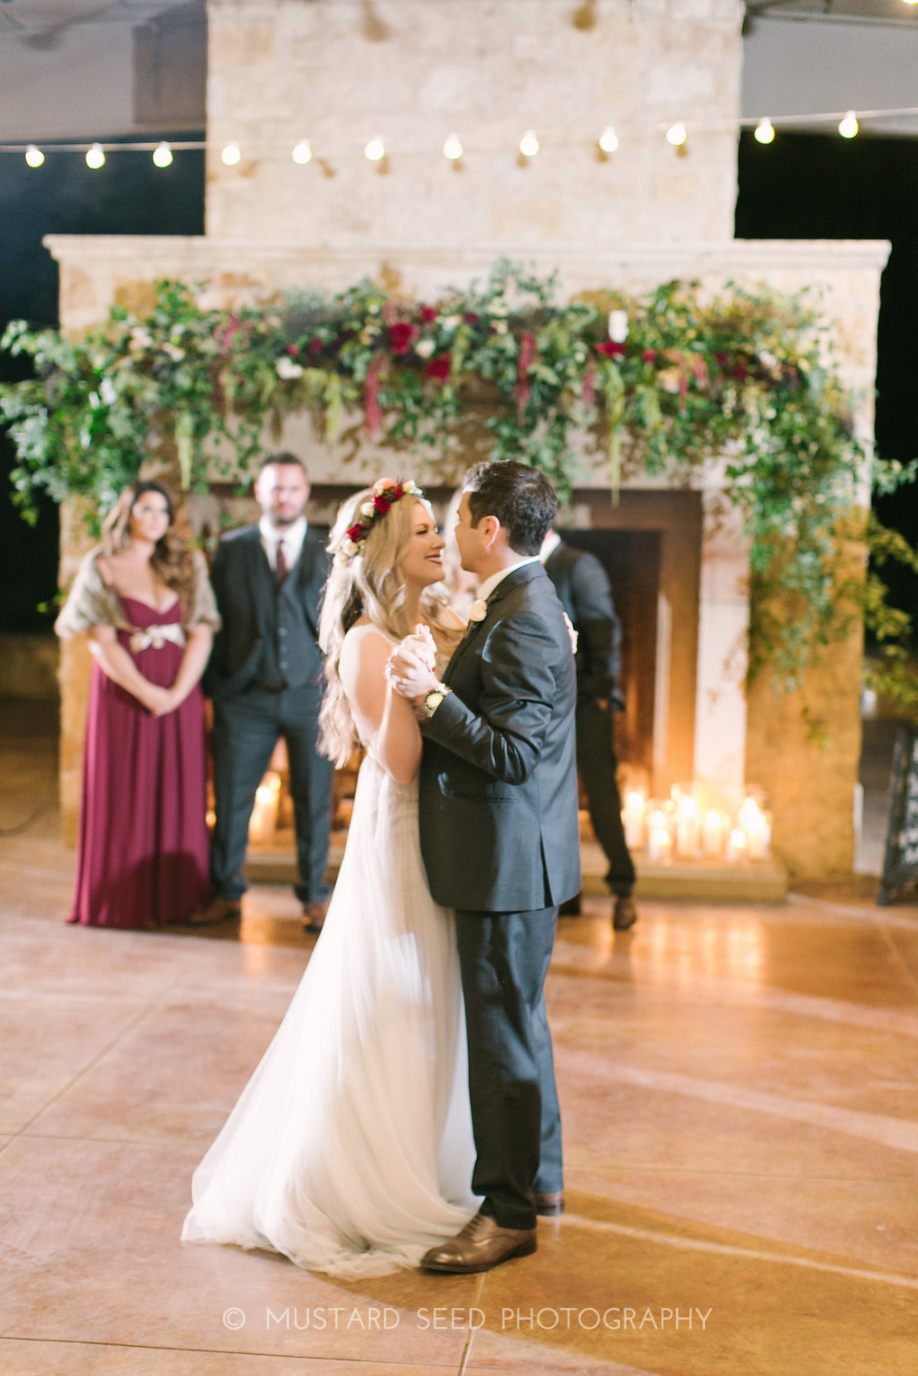 First Dance in front of a fireplace.